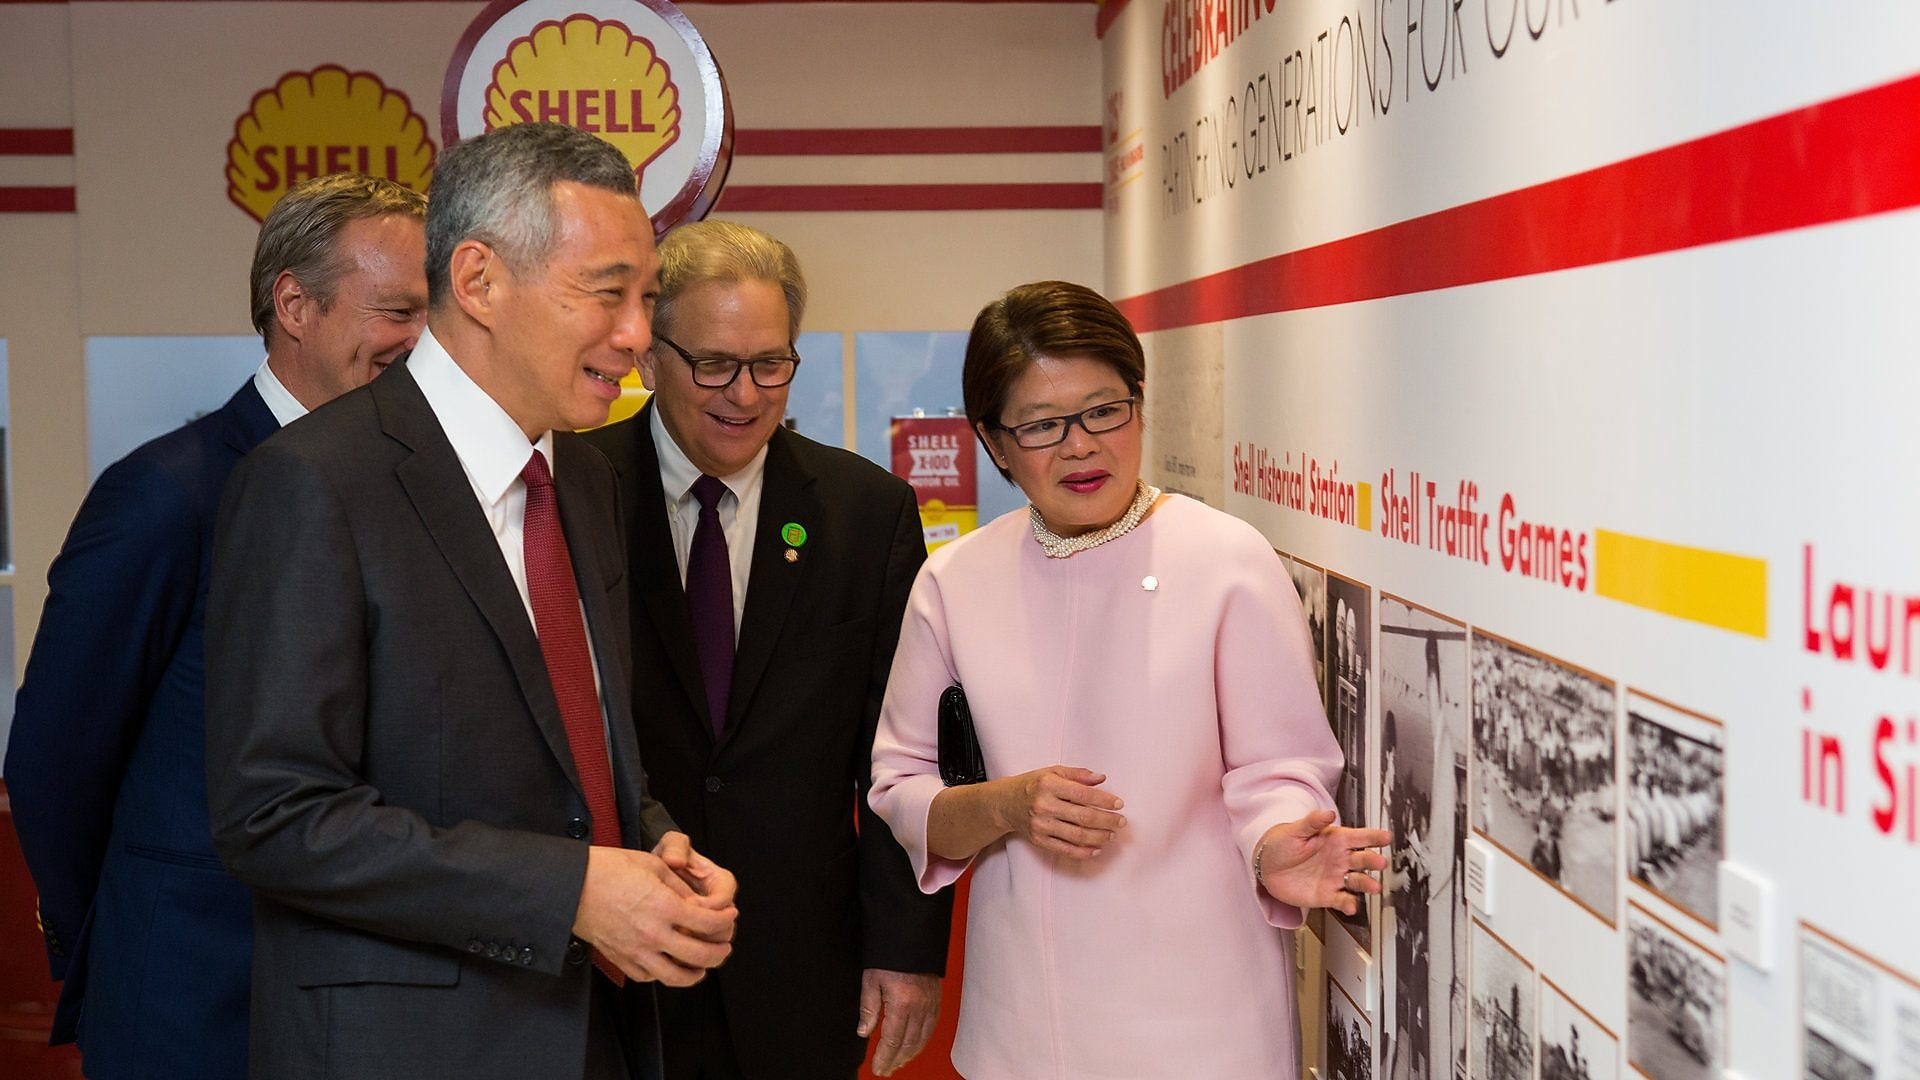 Goh Swee Chen, Chairperson of Shell Companies in Singapore, points out old articles about Shell to PM Lee